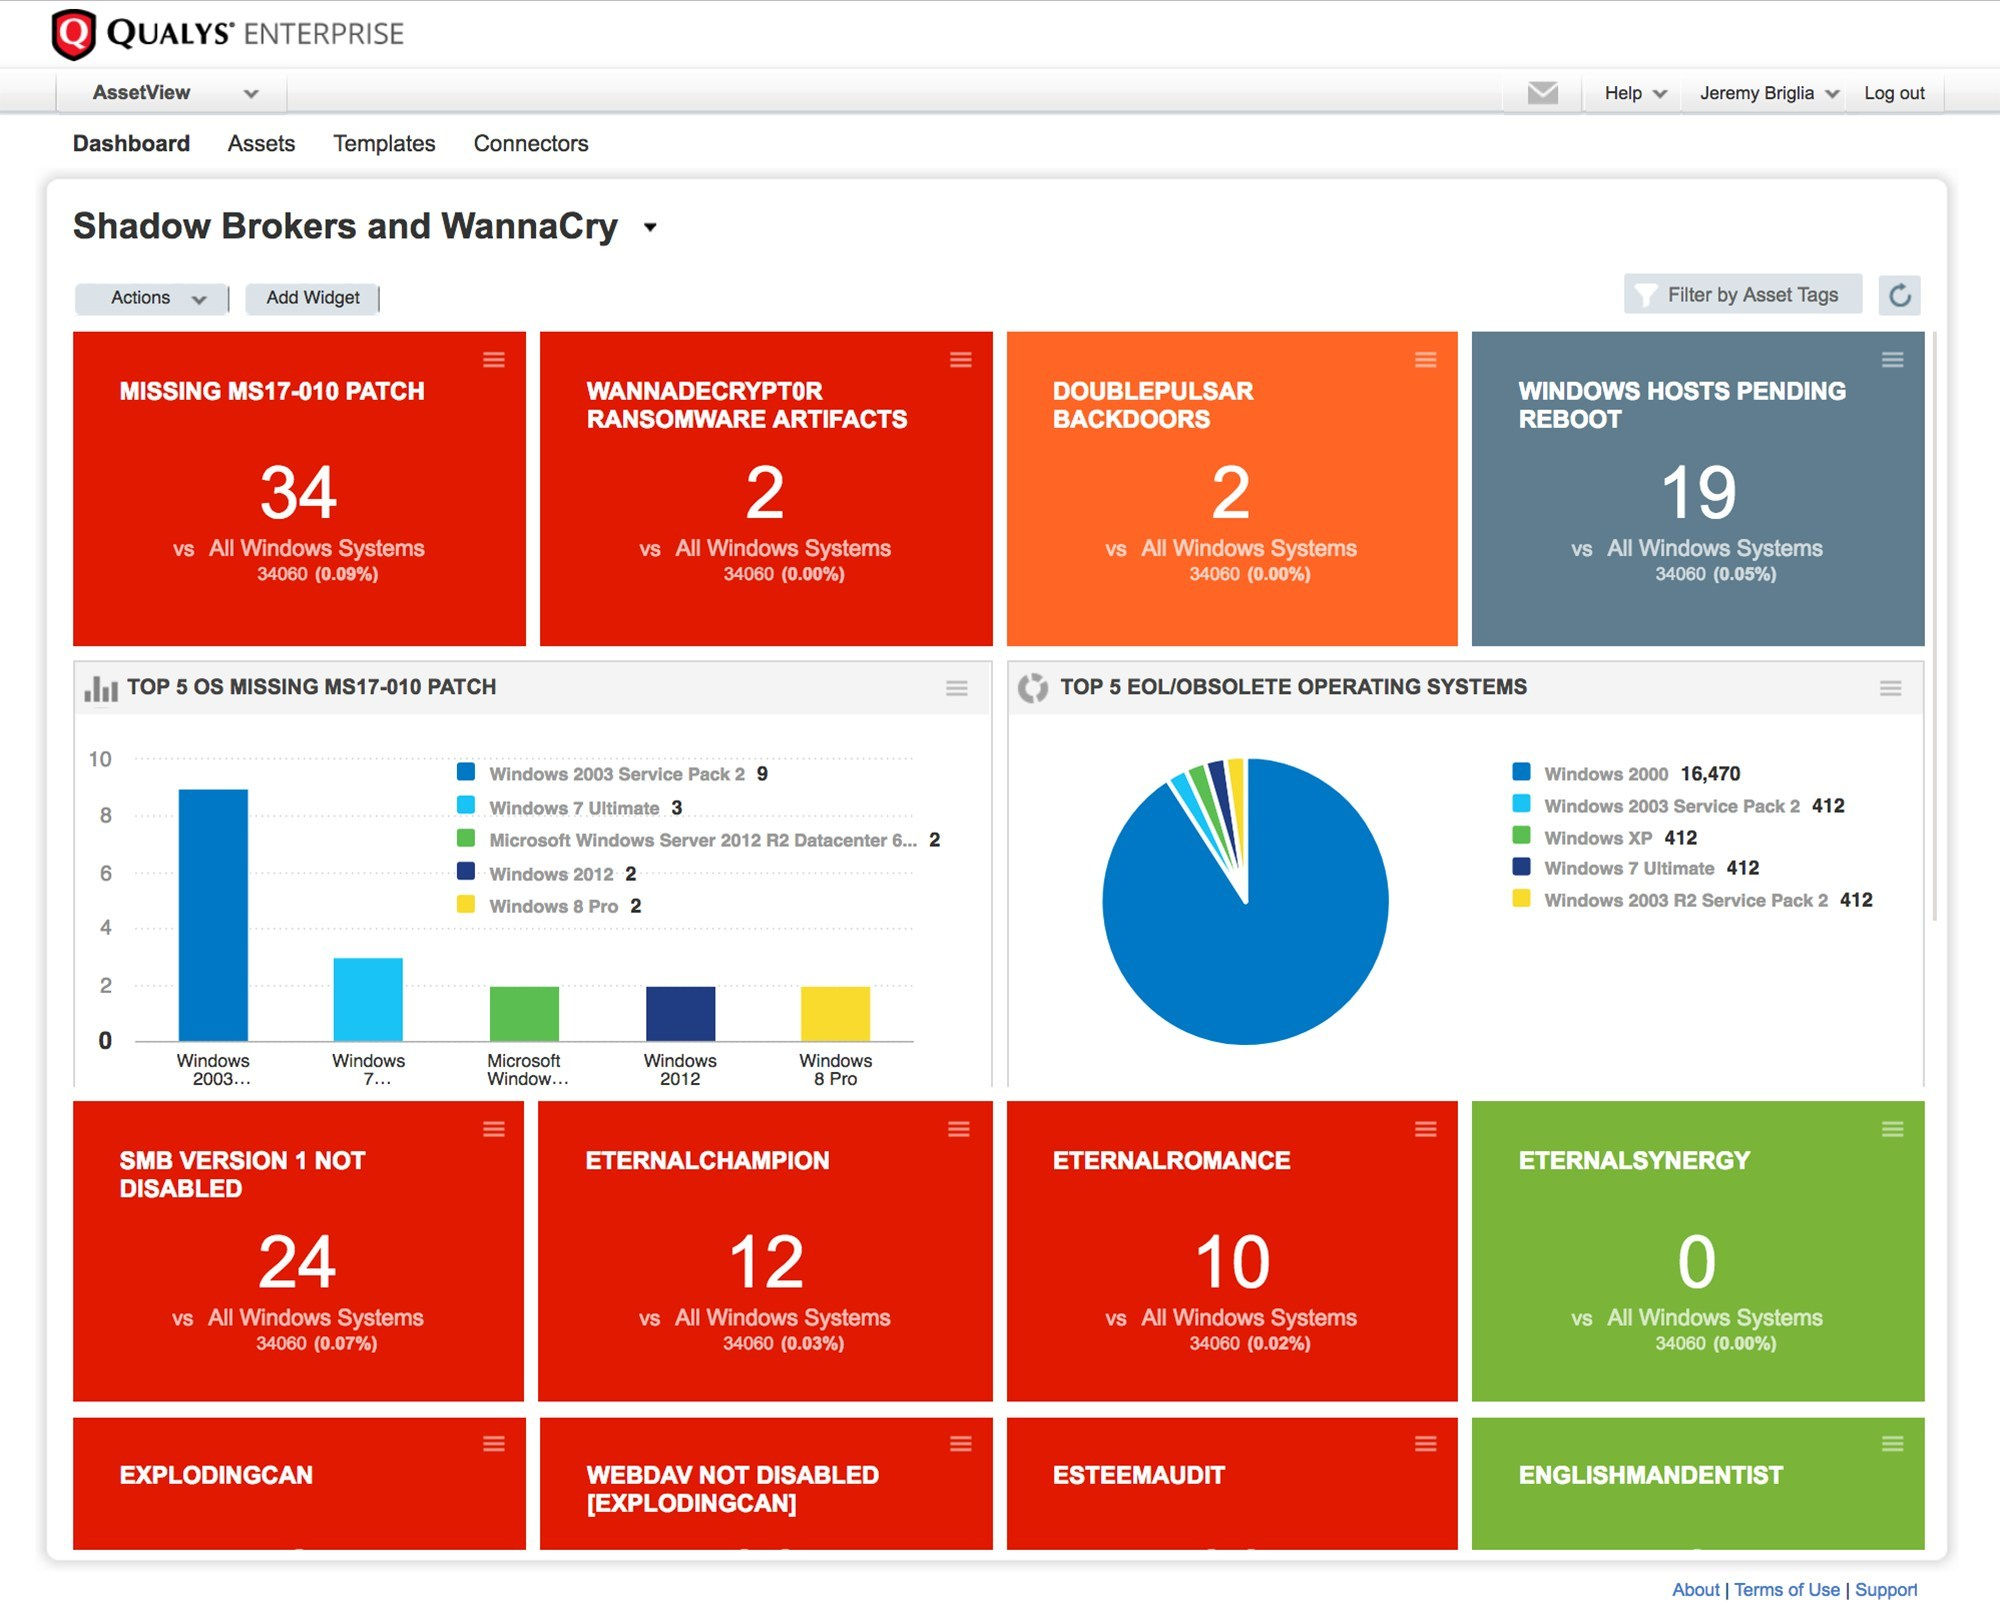 Qualys AssetView Dashboard- Tracking Shadow Brokers and WannaCry vulnerabilities and exploits